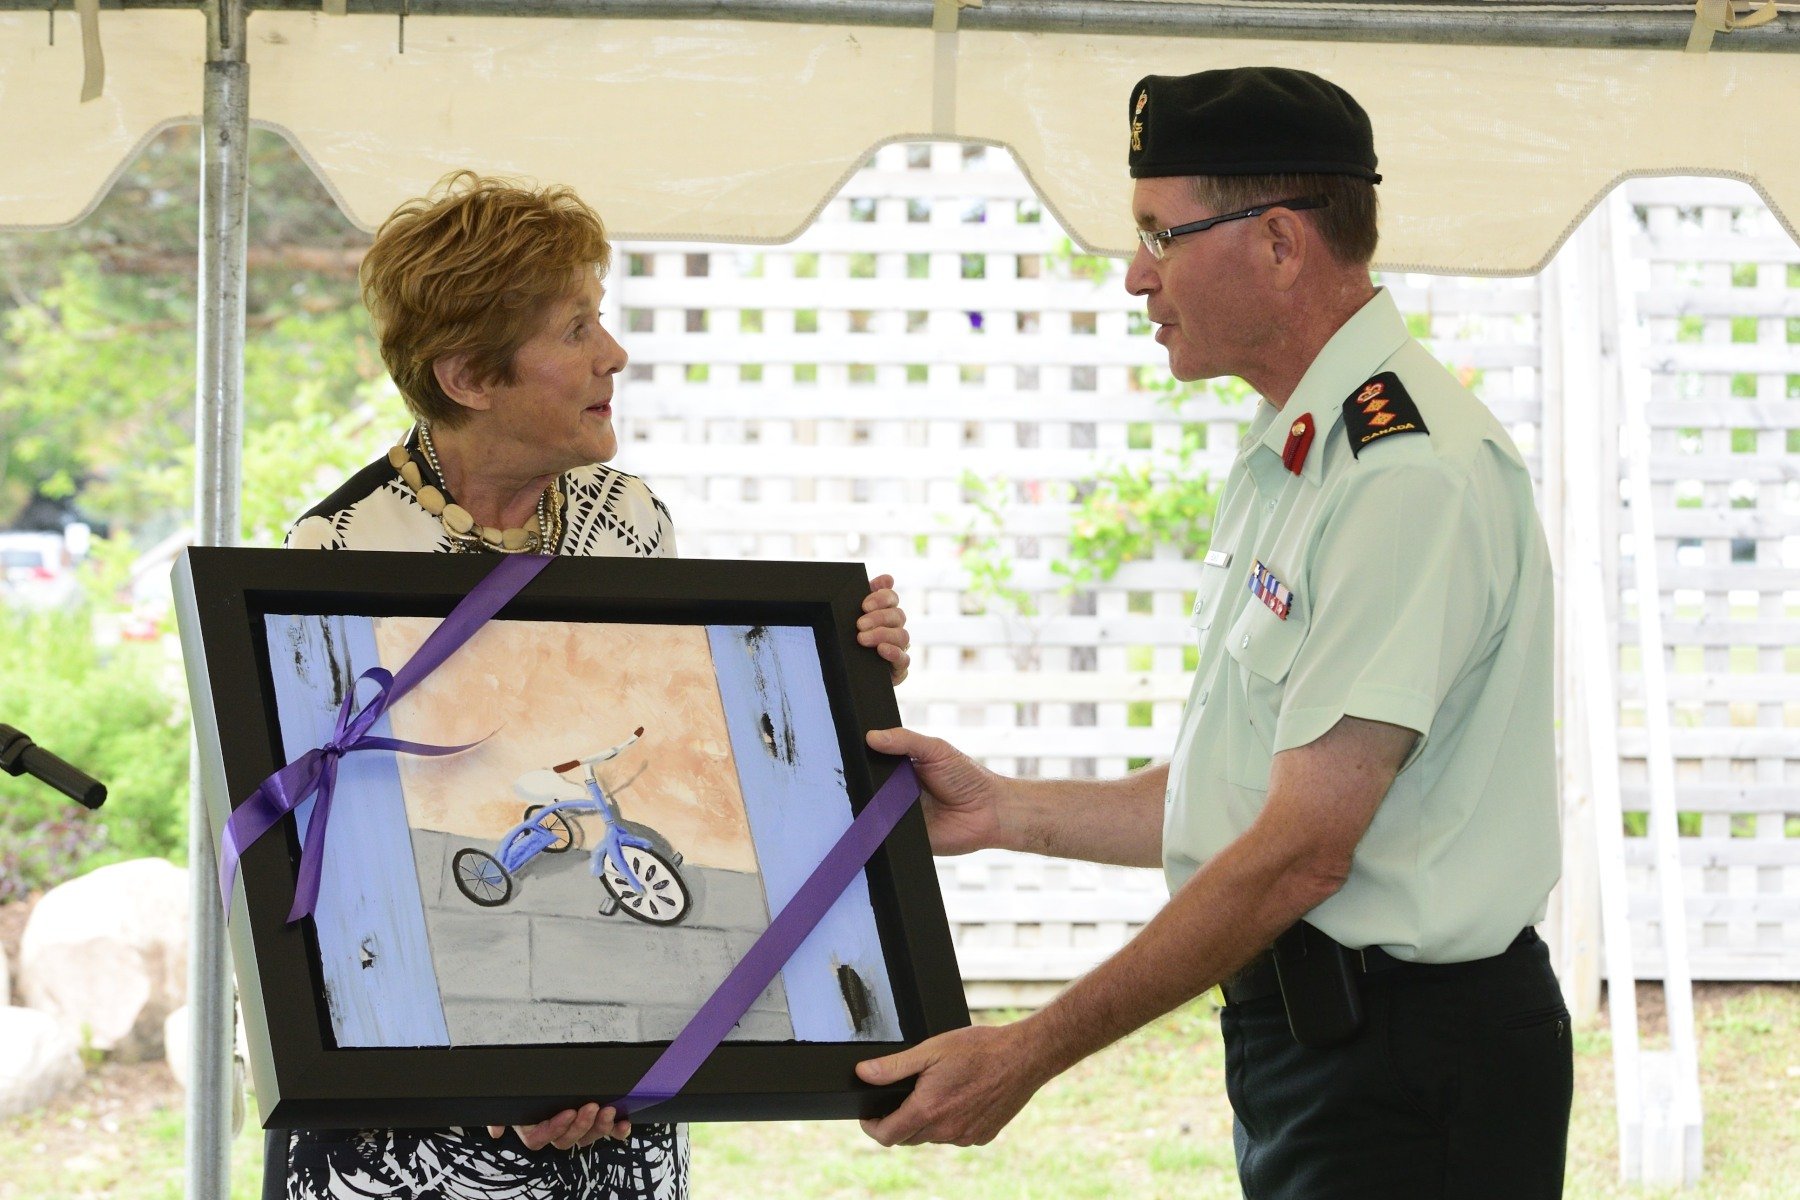 Mrs. Johnston added her own contribution to the artworks by donating a painting to Colonel Blais